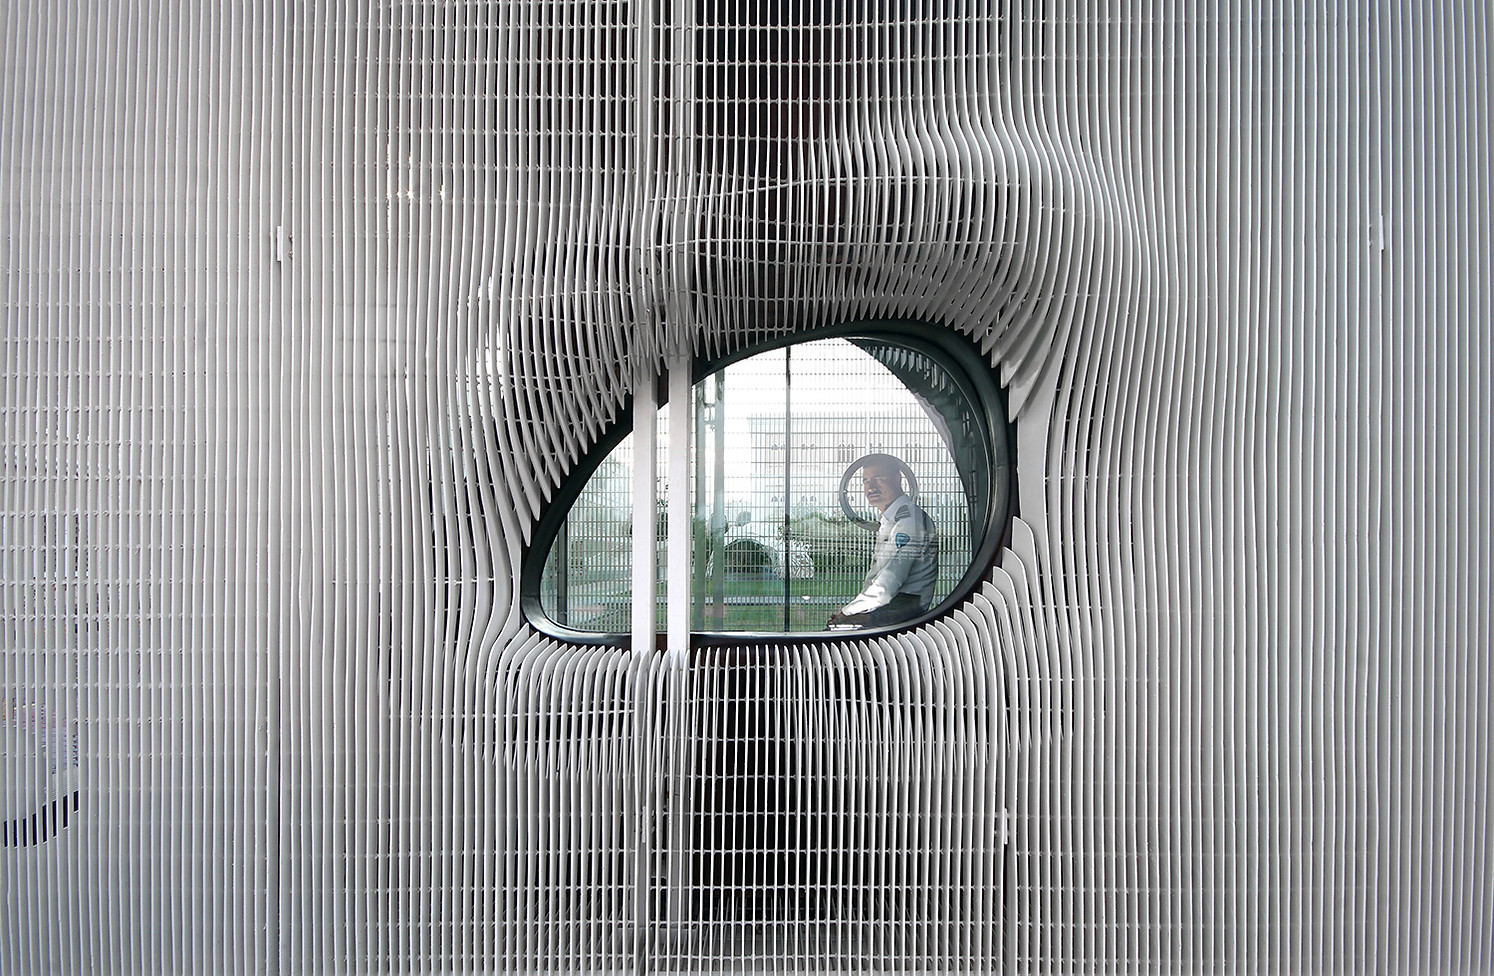 View of security guard through the oculus window